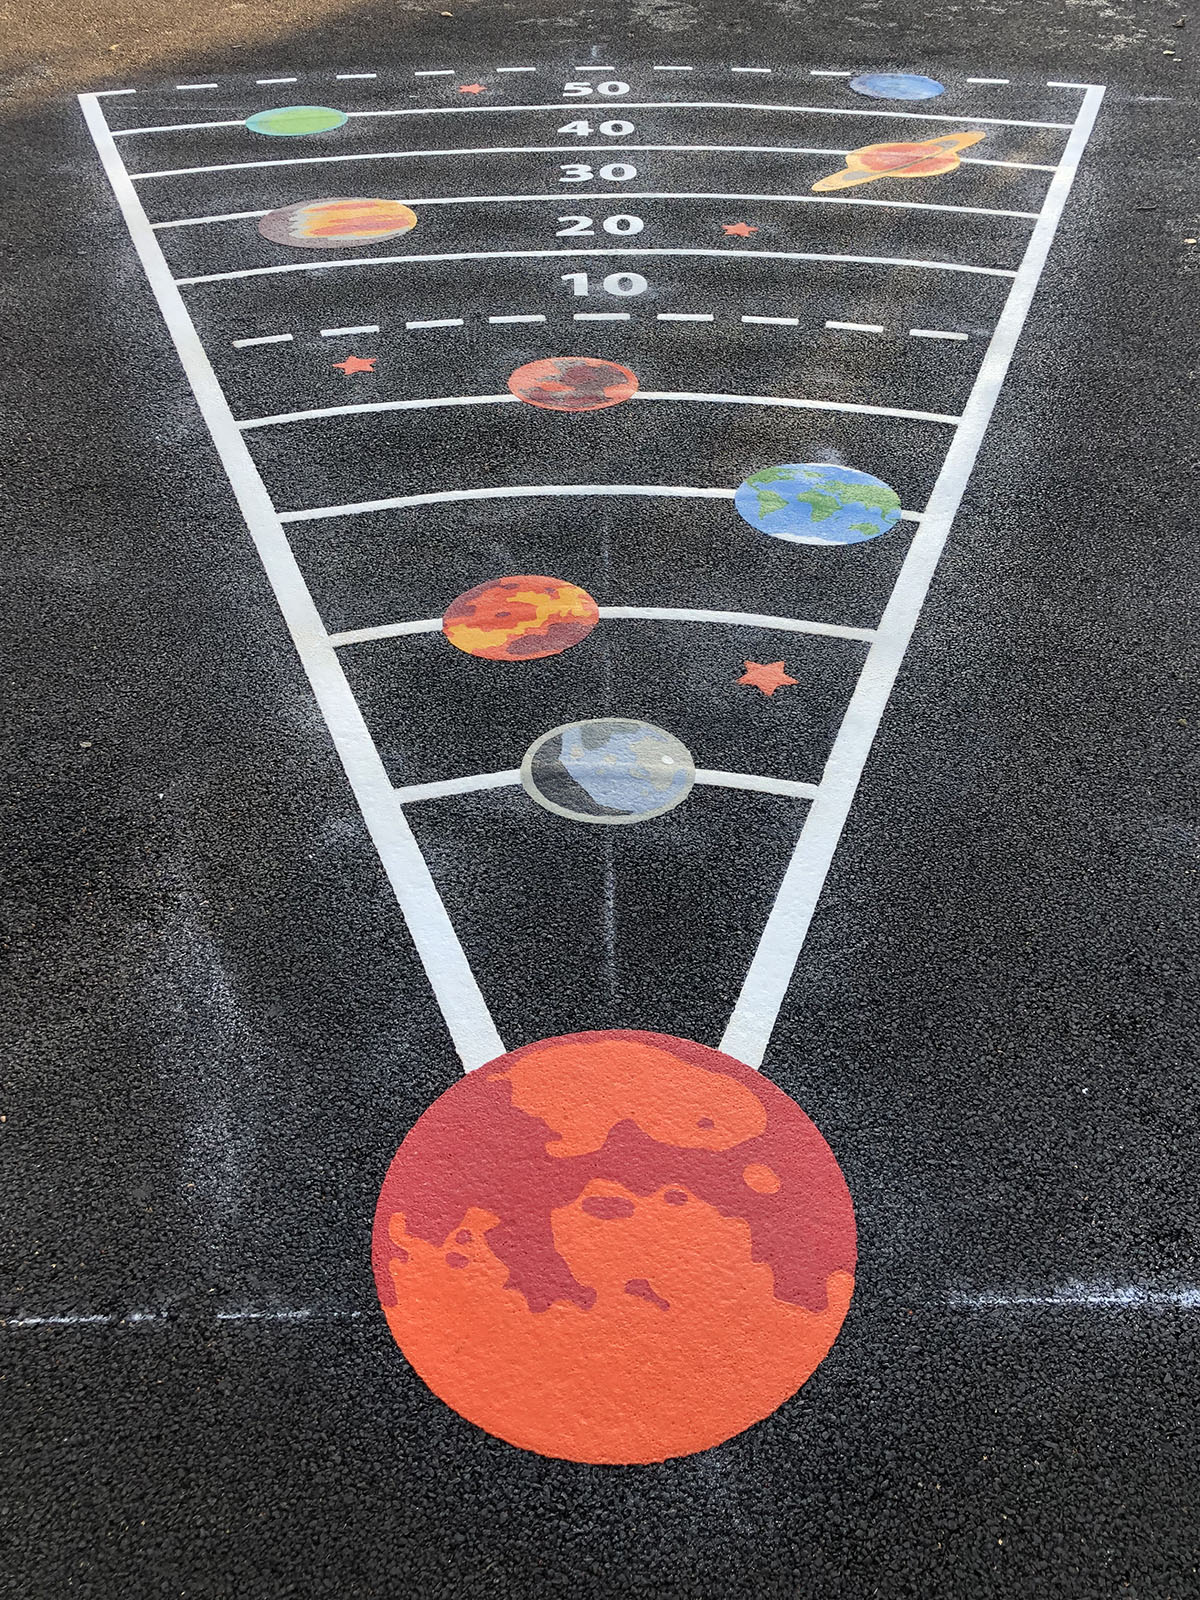 Targets Playground Marking Gallery Images